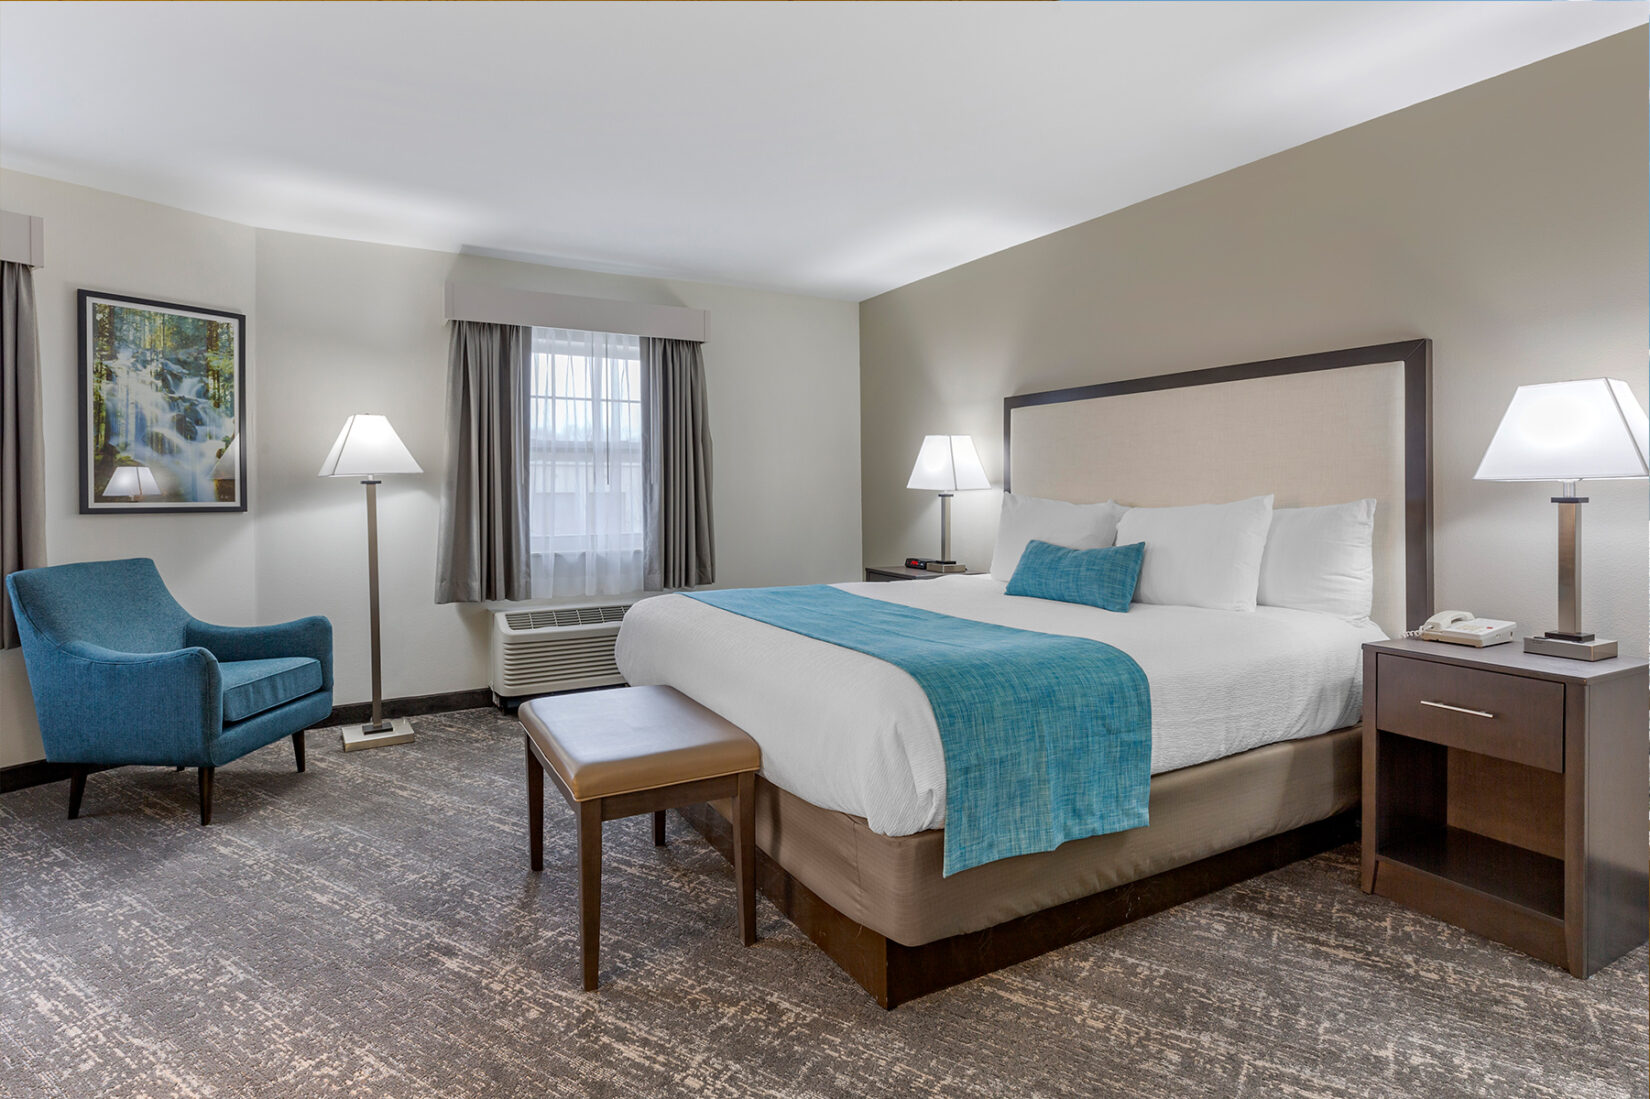 Clean and Simple Hotel Room with Accent Chair